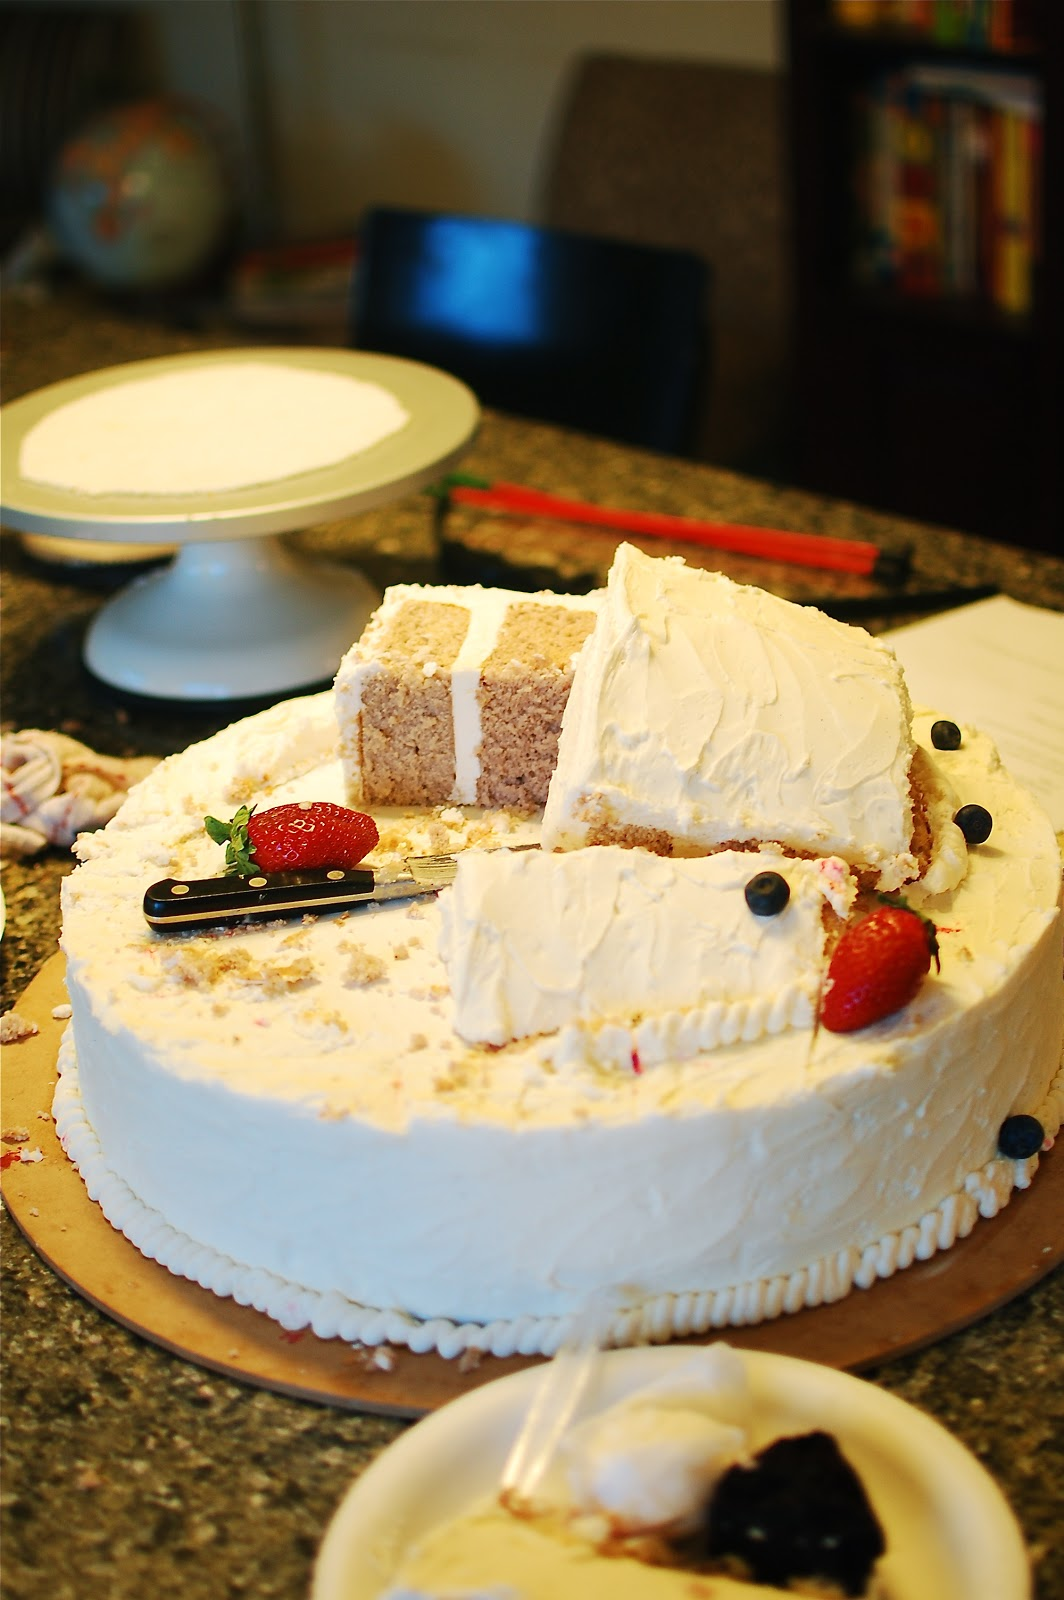 How To Make The Thinnest Slices Of Cake